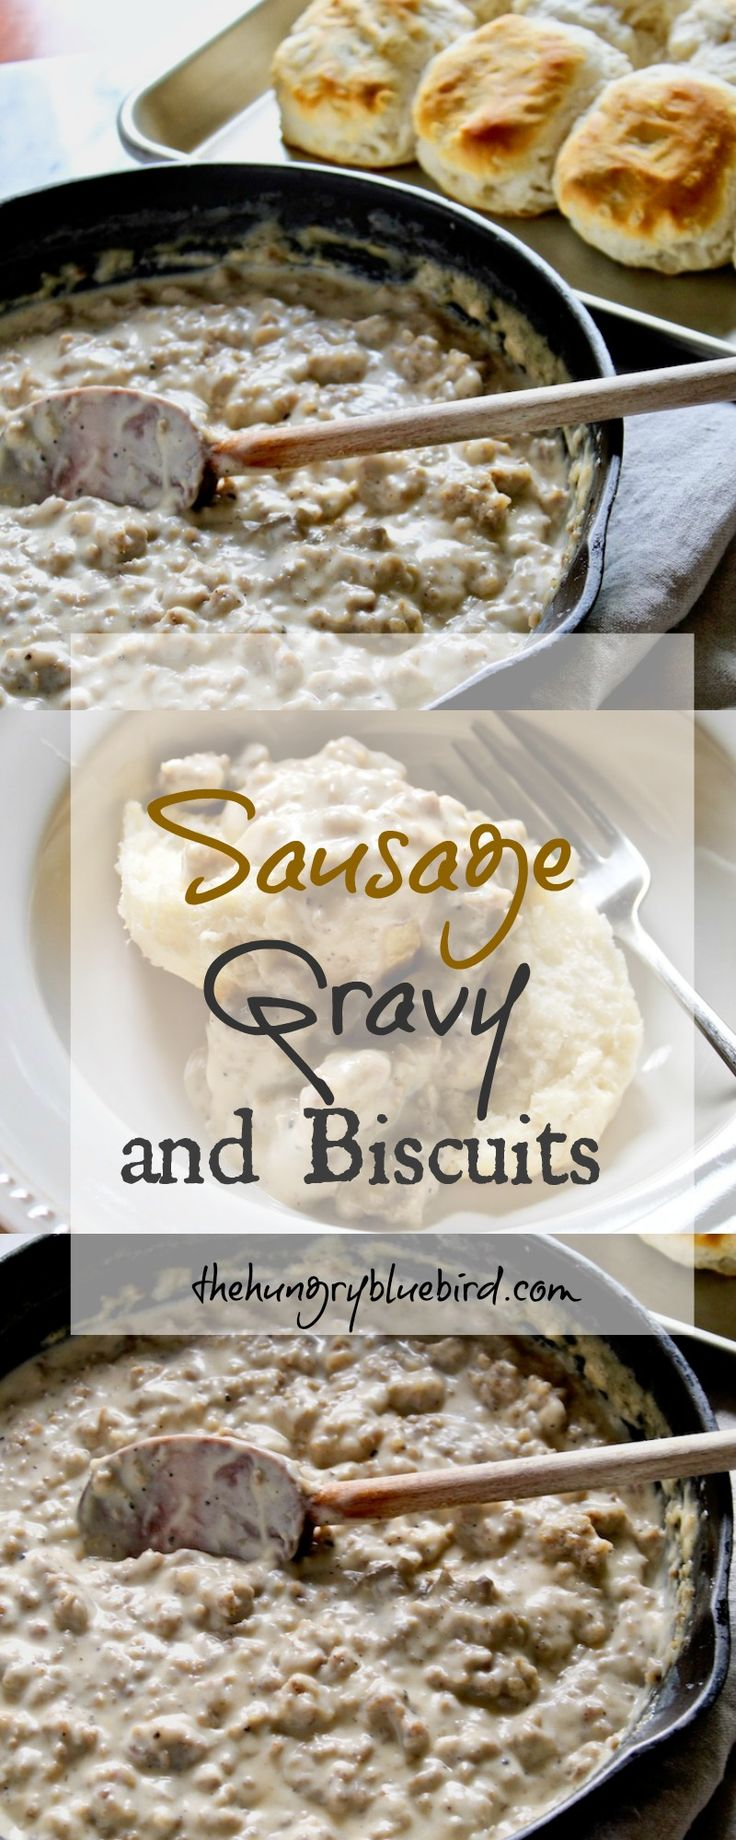 Country-style sausage gravy over warm buttermilk biscuits